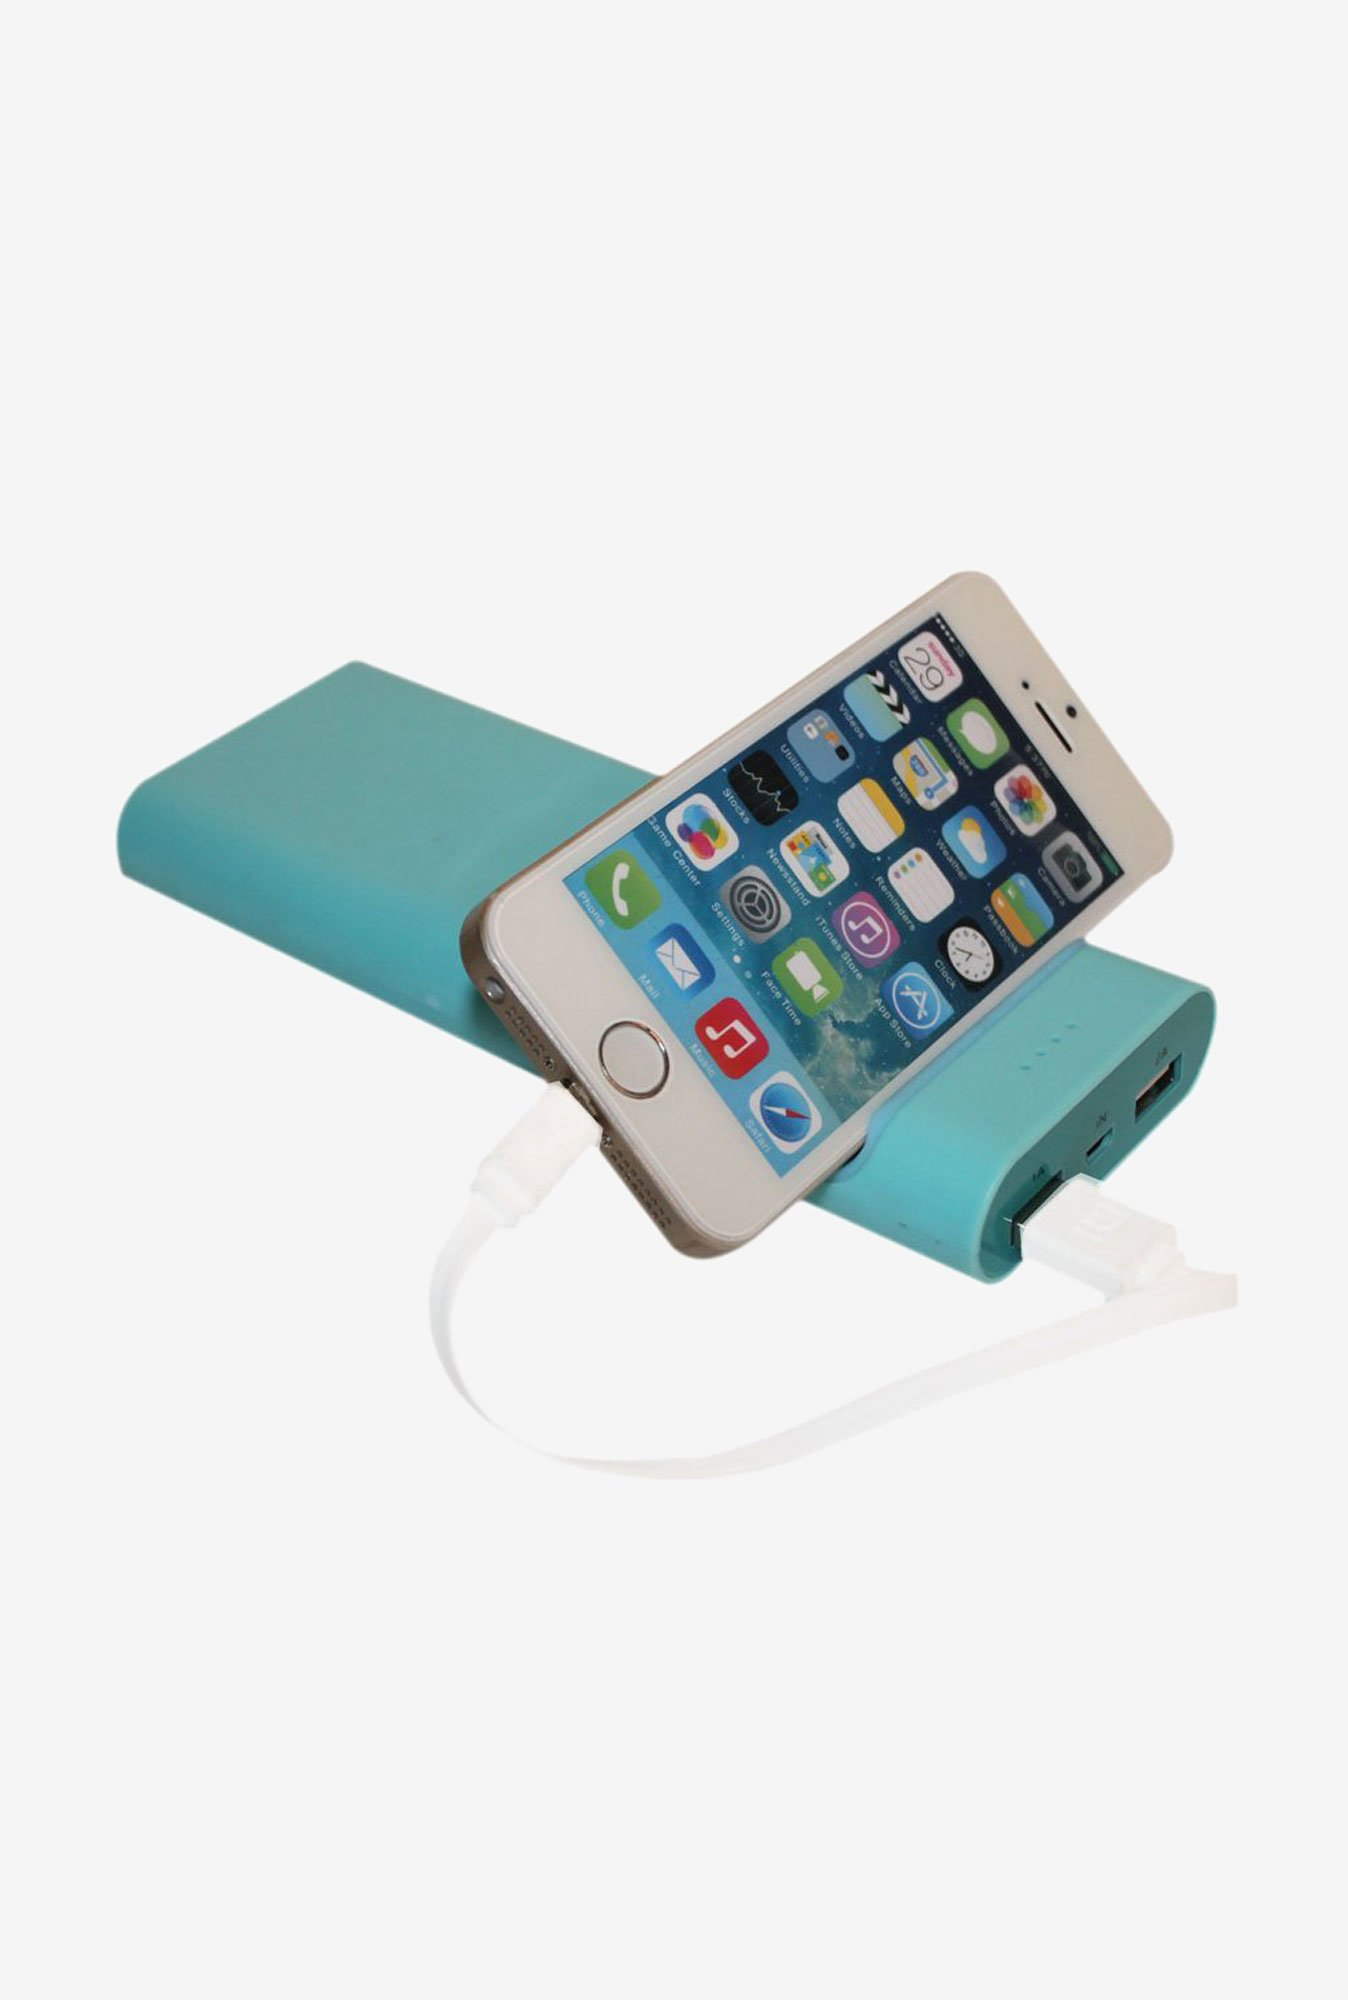 Callmate Mobile Holder 15600 mAh Power Bank (Blue)